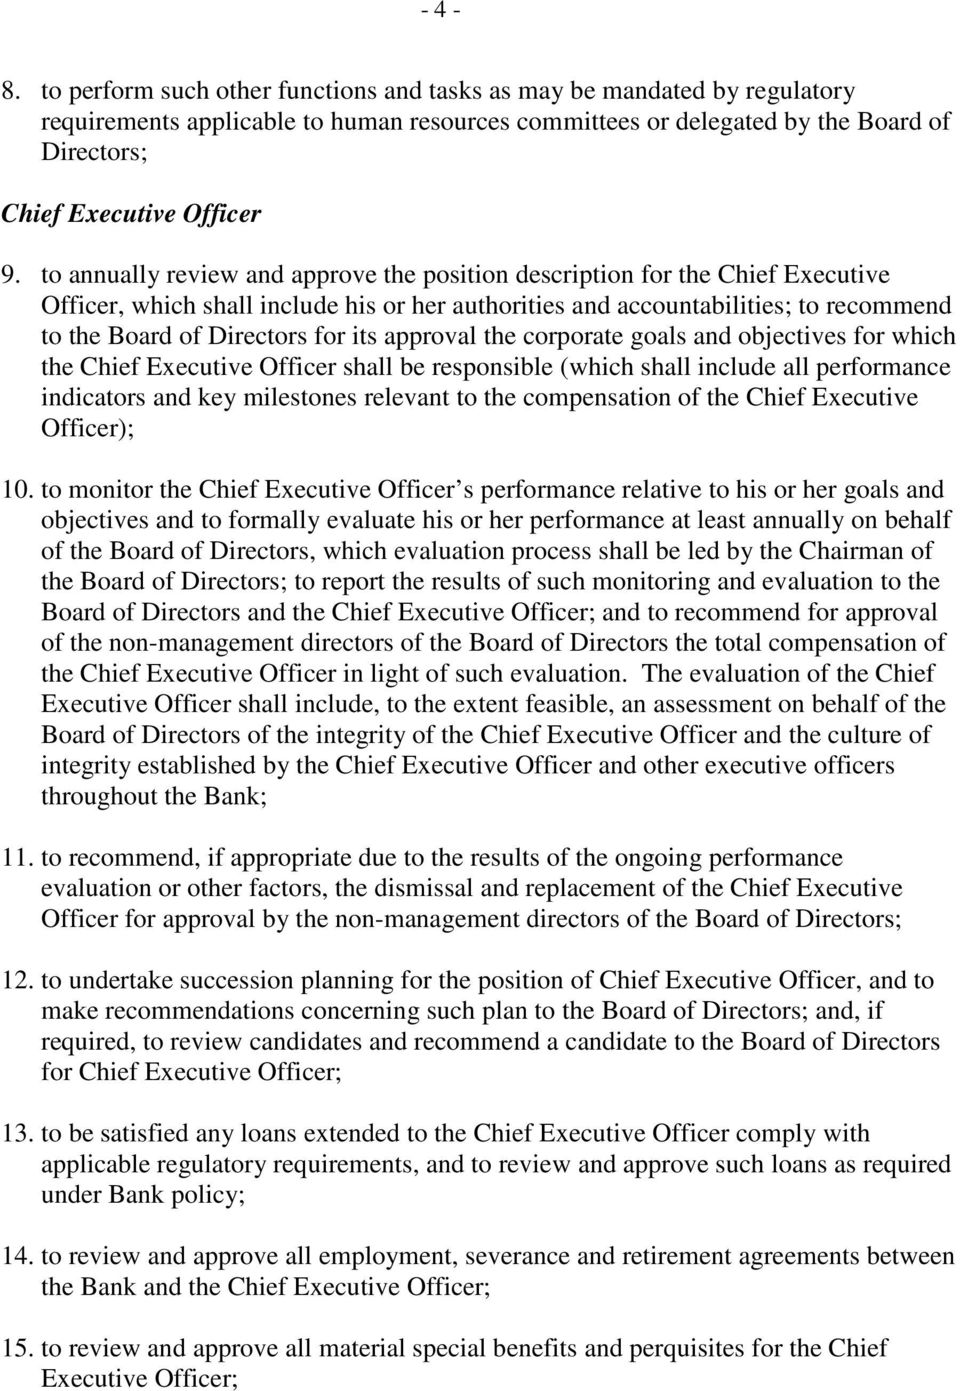 to annually review and approve the position description for the Chief Executive Officer, which shall include his or her authorities and accountabilities; to recommend to the Board of Directors for